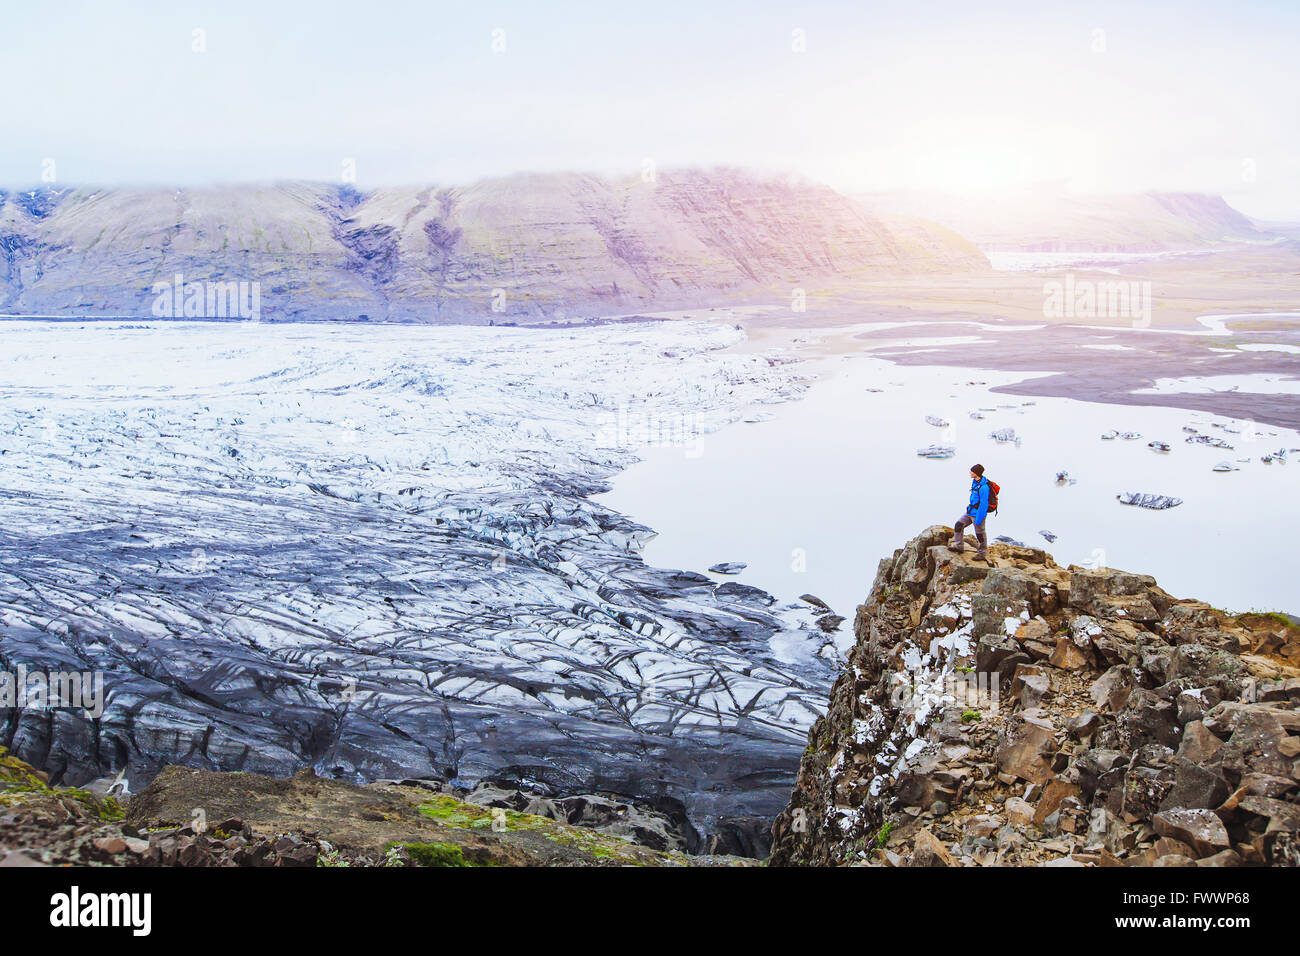 hiking in winter, backpacker enjoying panoramic landscape of glacier in Iceland at sunset in national park Skaftafell - Stock Image